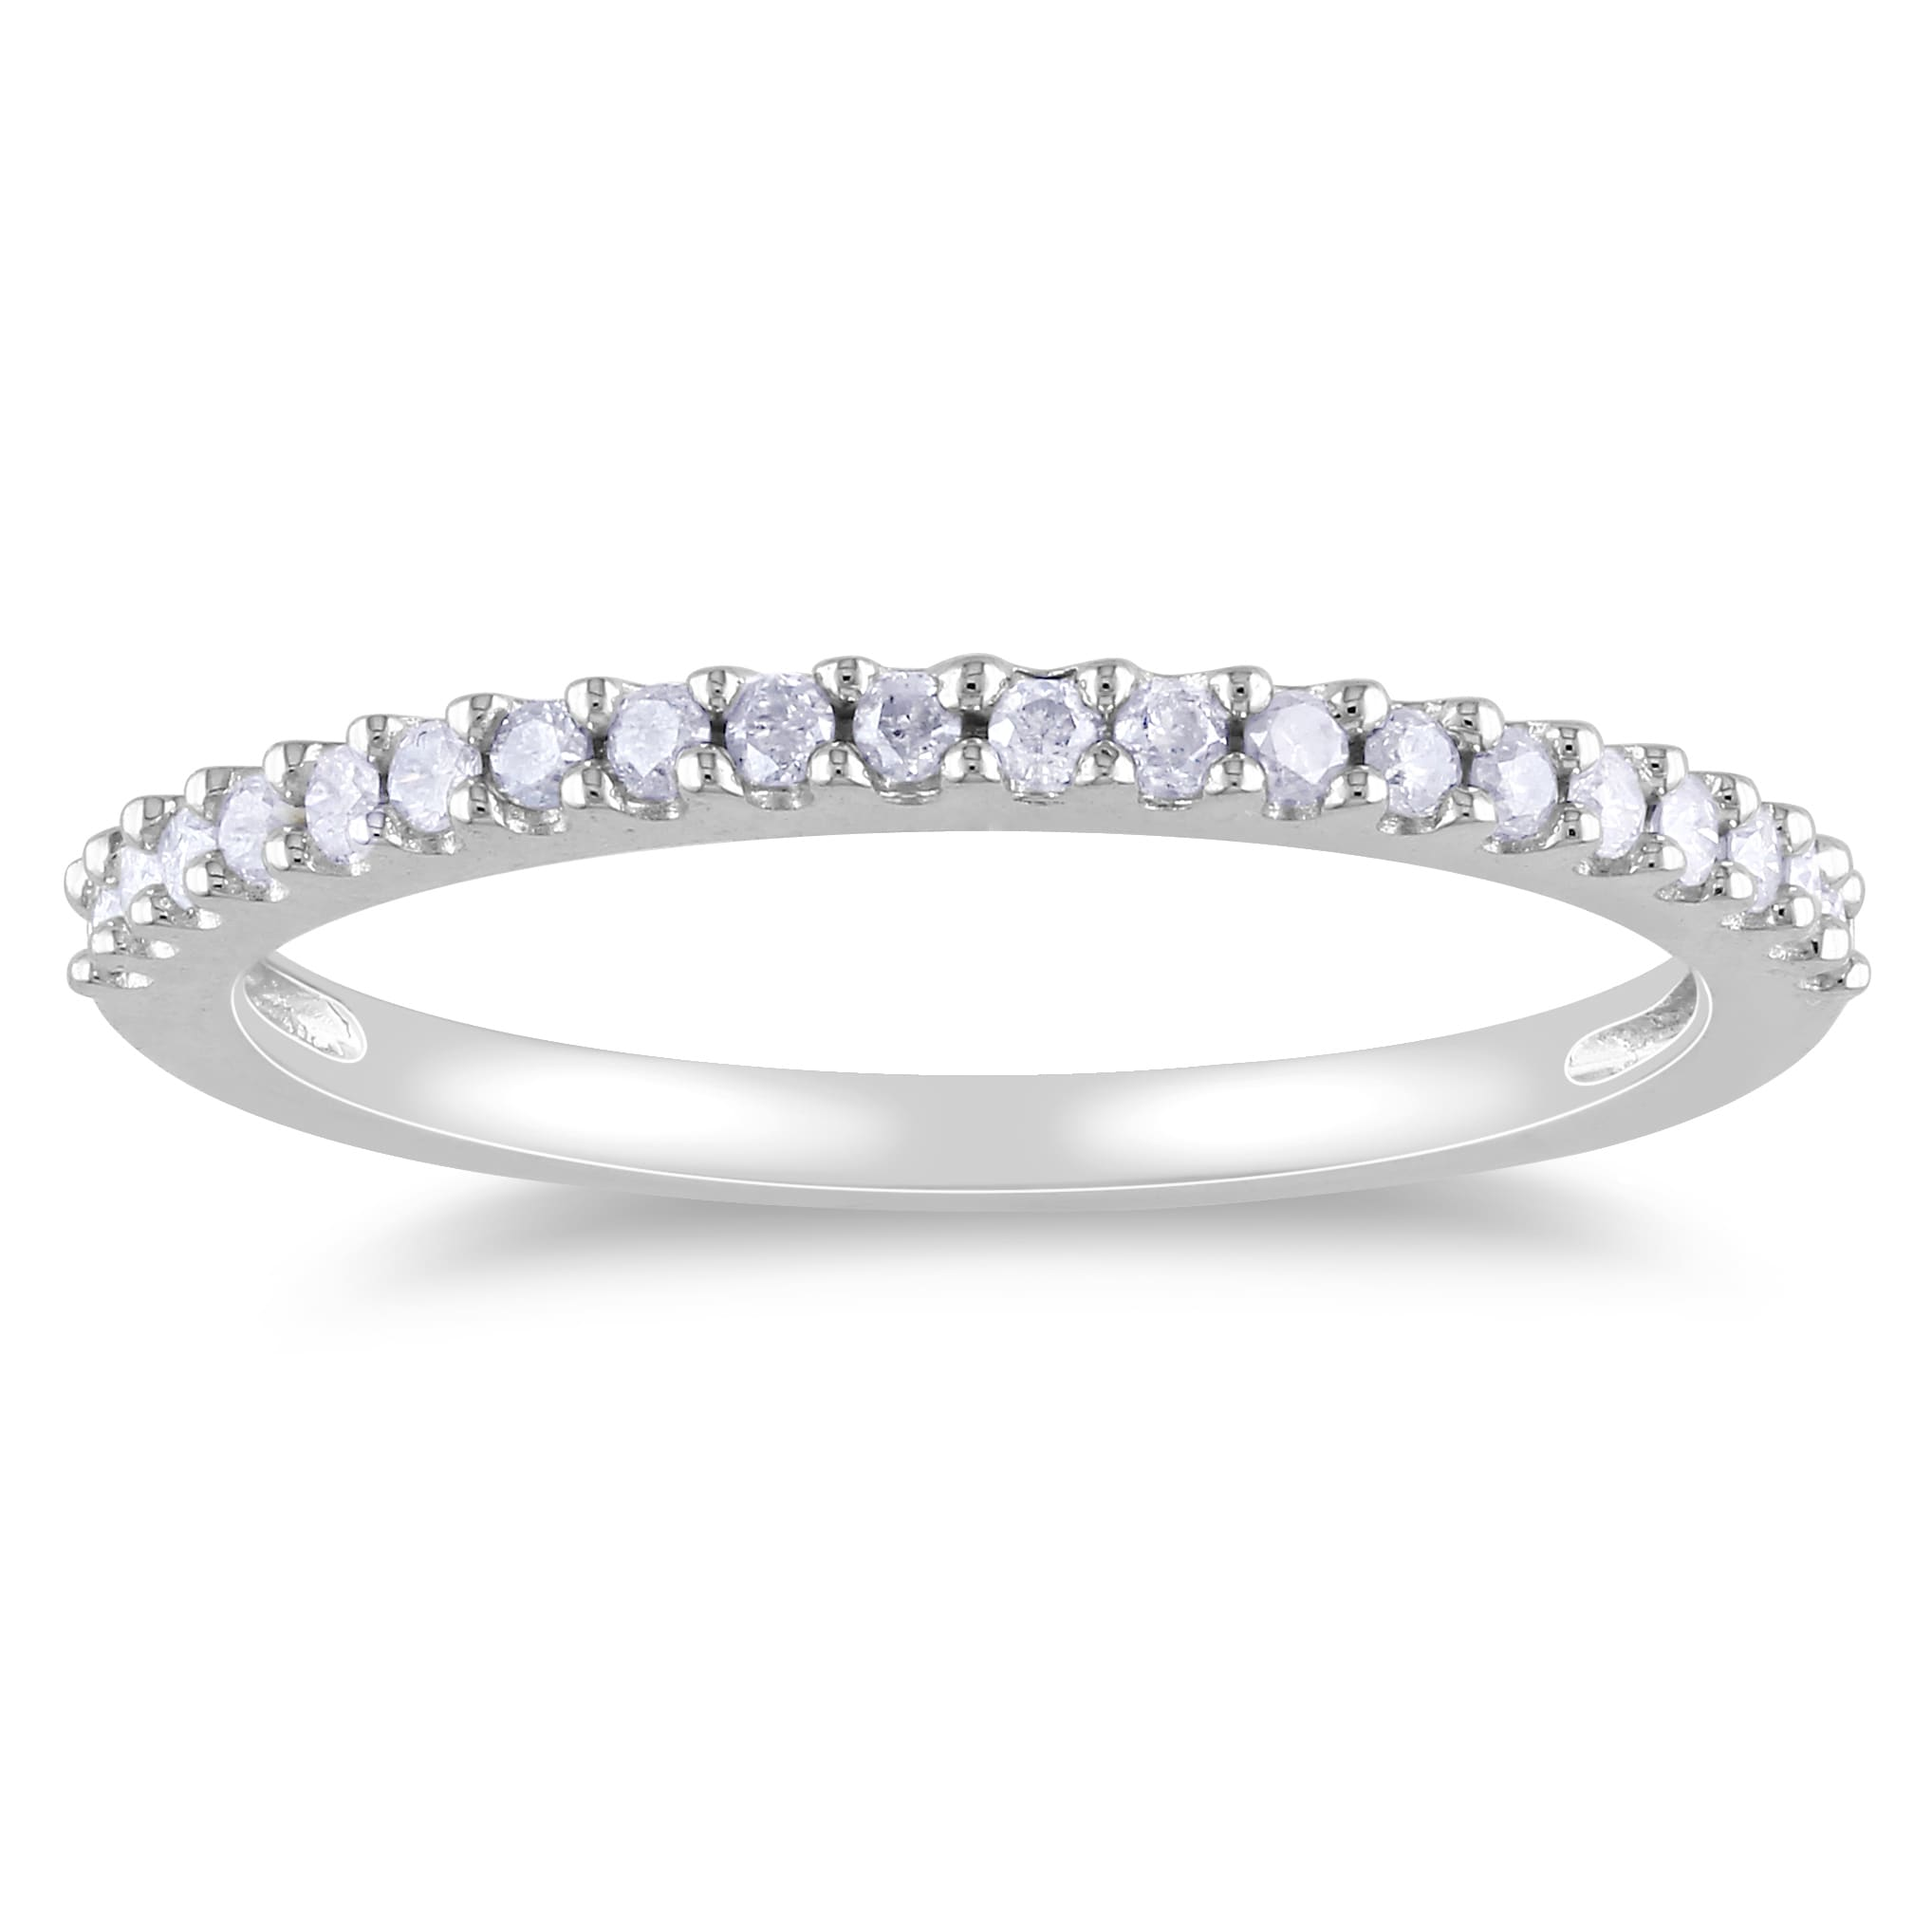 Miadora 10k White Gold 1 5ct TDW Diamond Eternity Wedding Band Ring Oversto